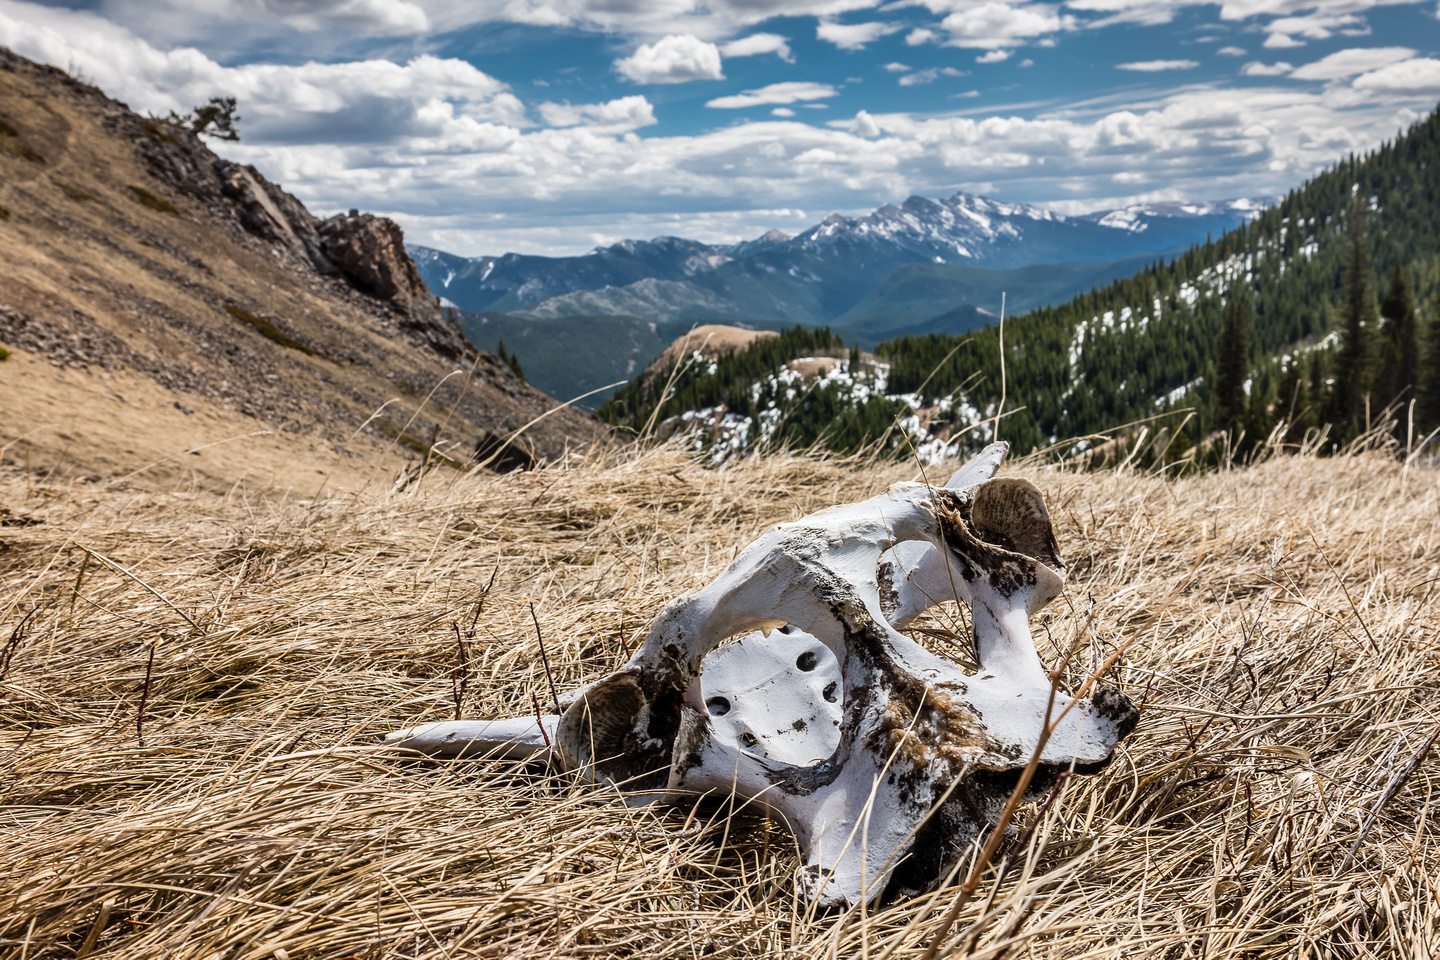 At the col between Junction Hill and the 2nd ridge we found scattered bones from what is probably a bighorn sheep.